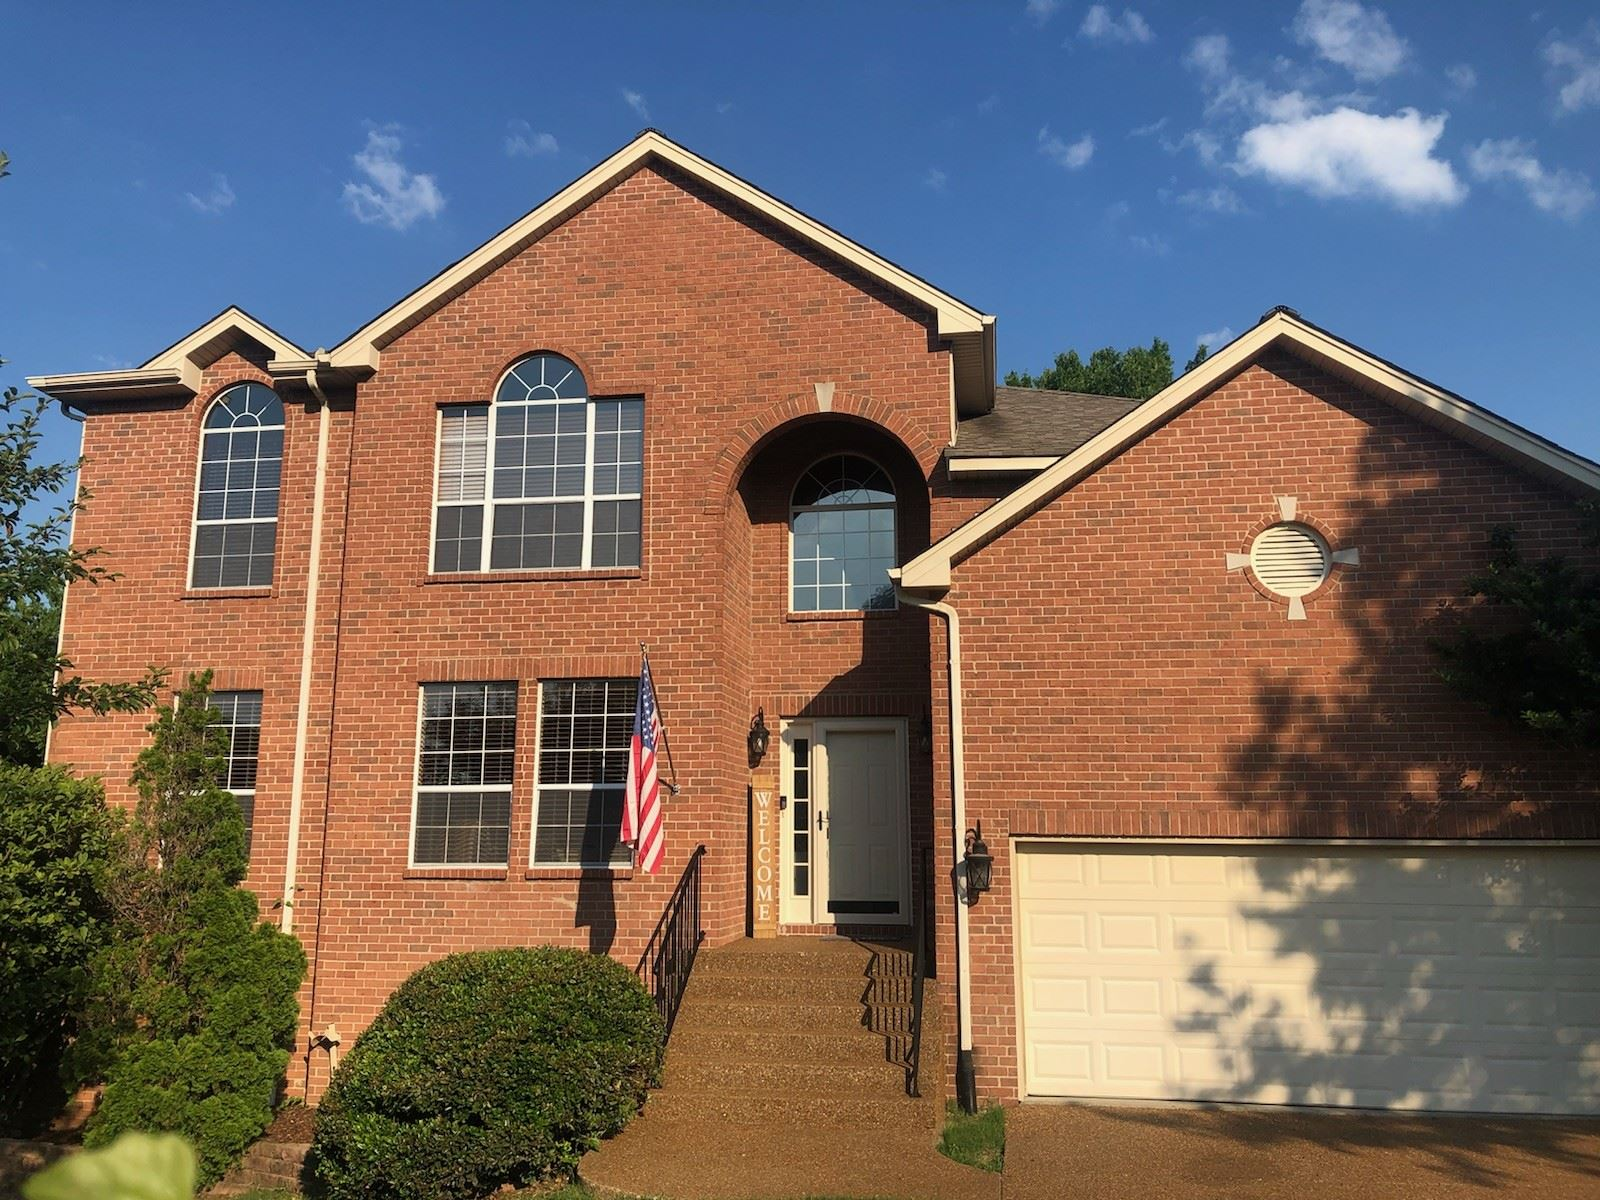 Photo of 1008 S Clubhouse Ct, Franklin, TN 37067 (MLS # 2262329)